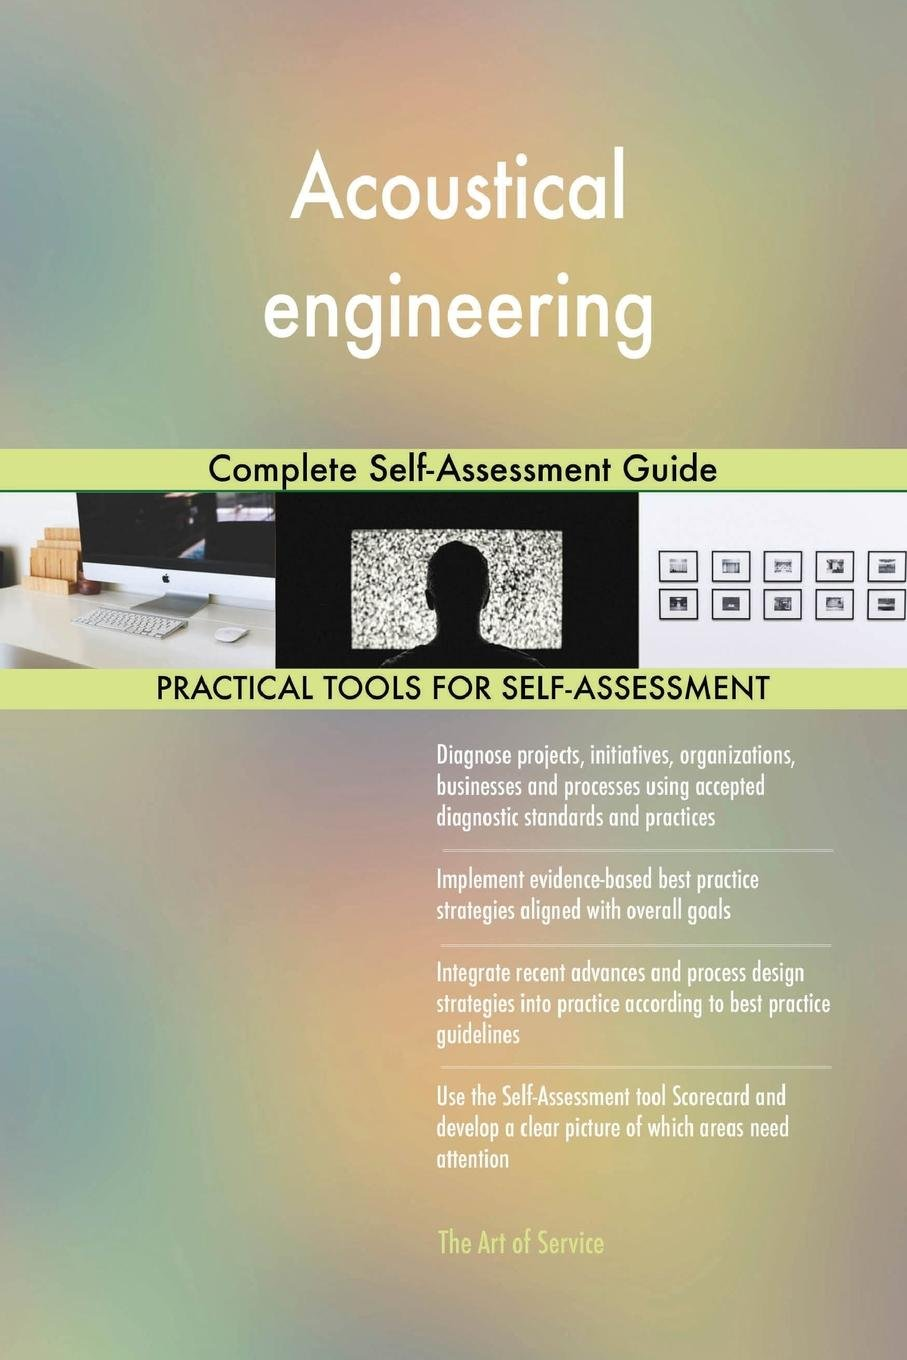 Acoustical Engineering Complete Self-Assessment Guide